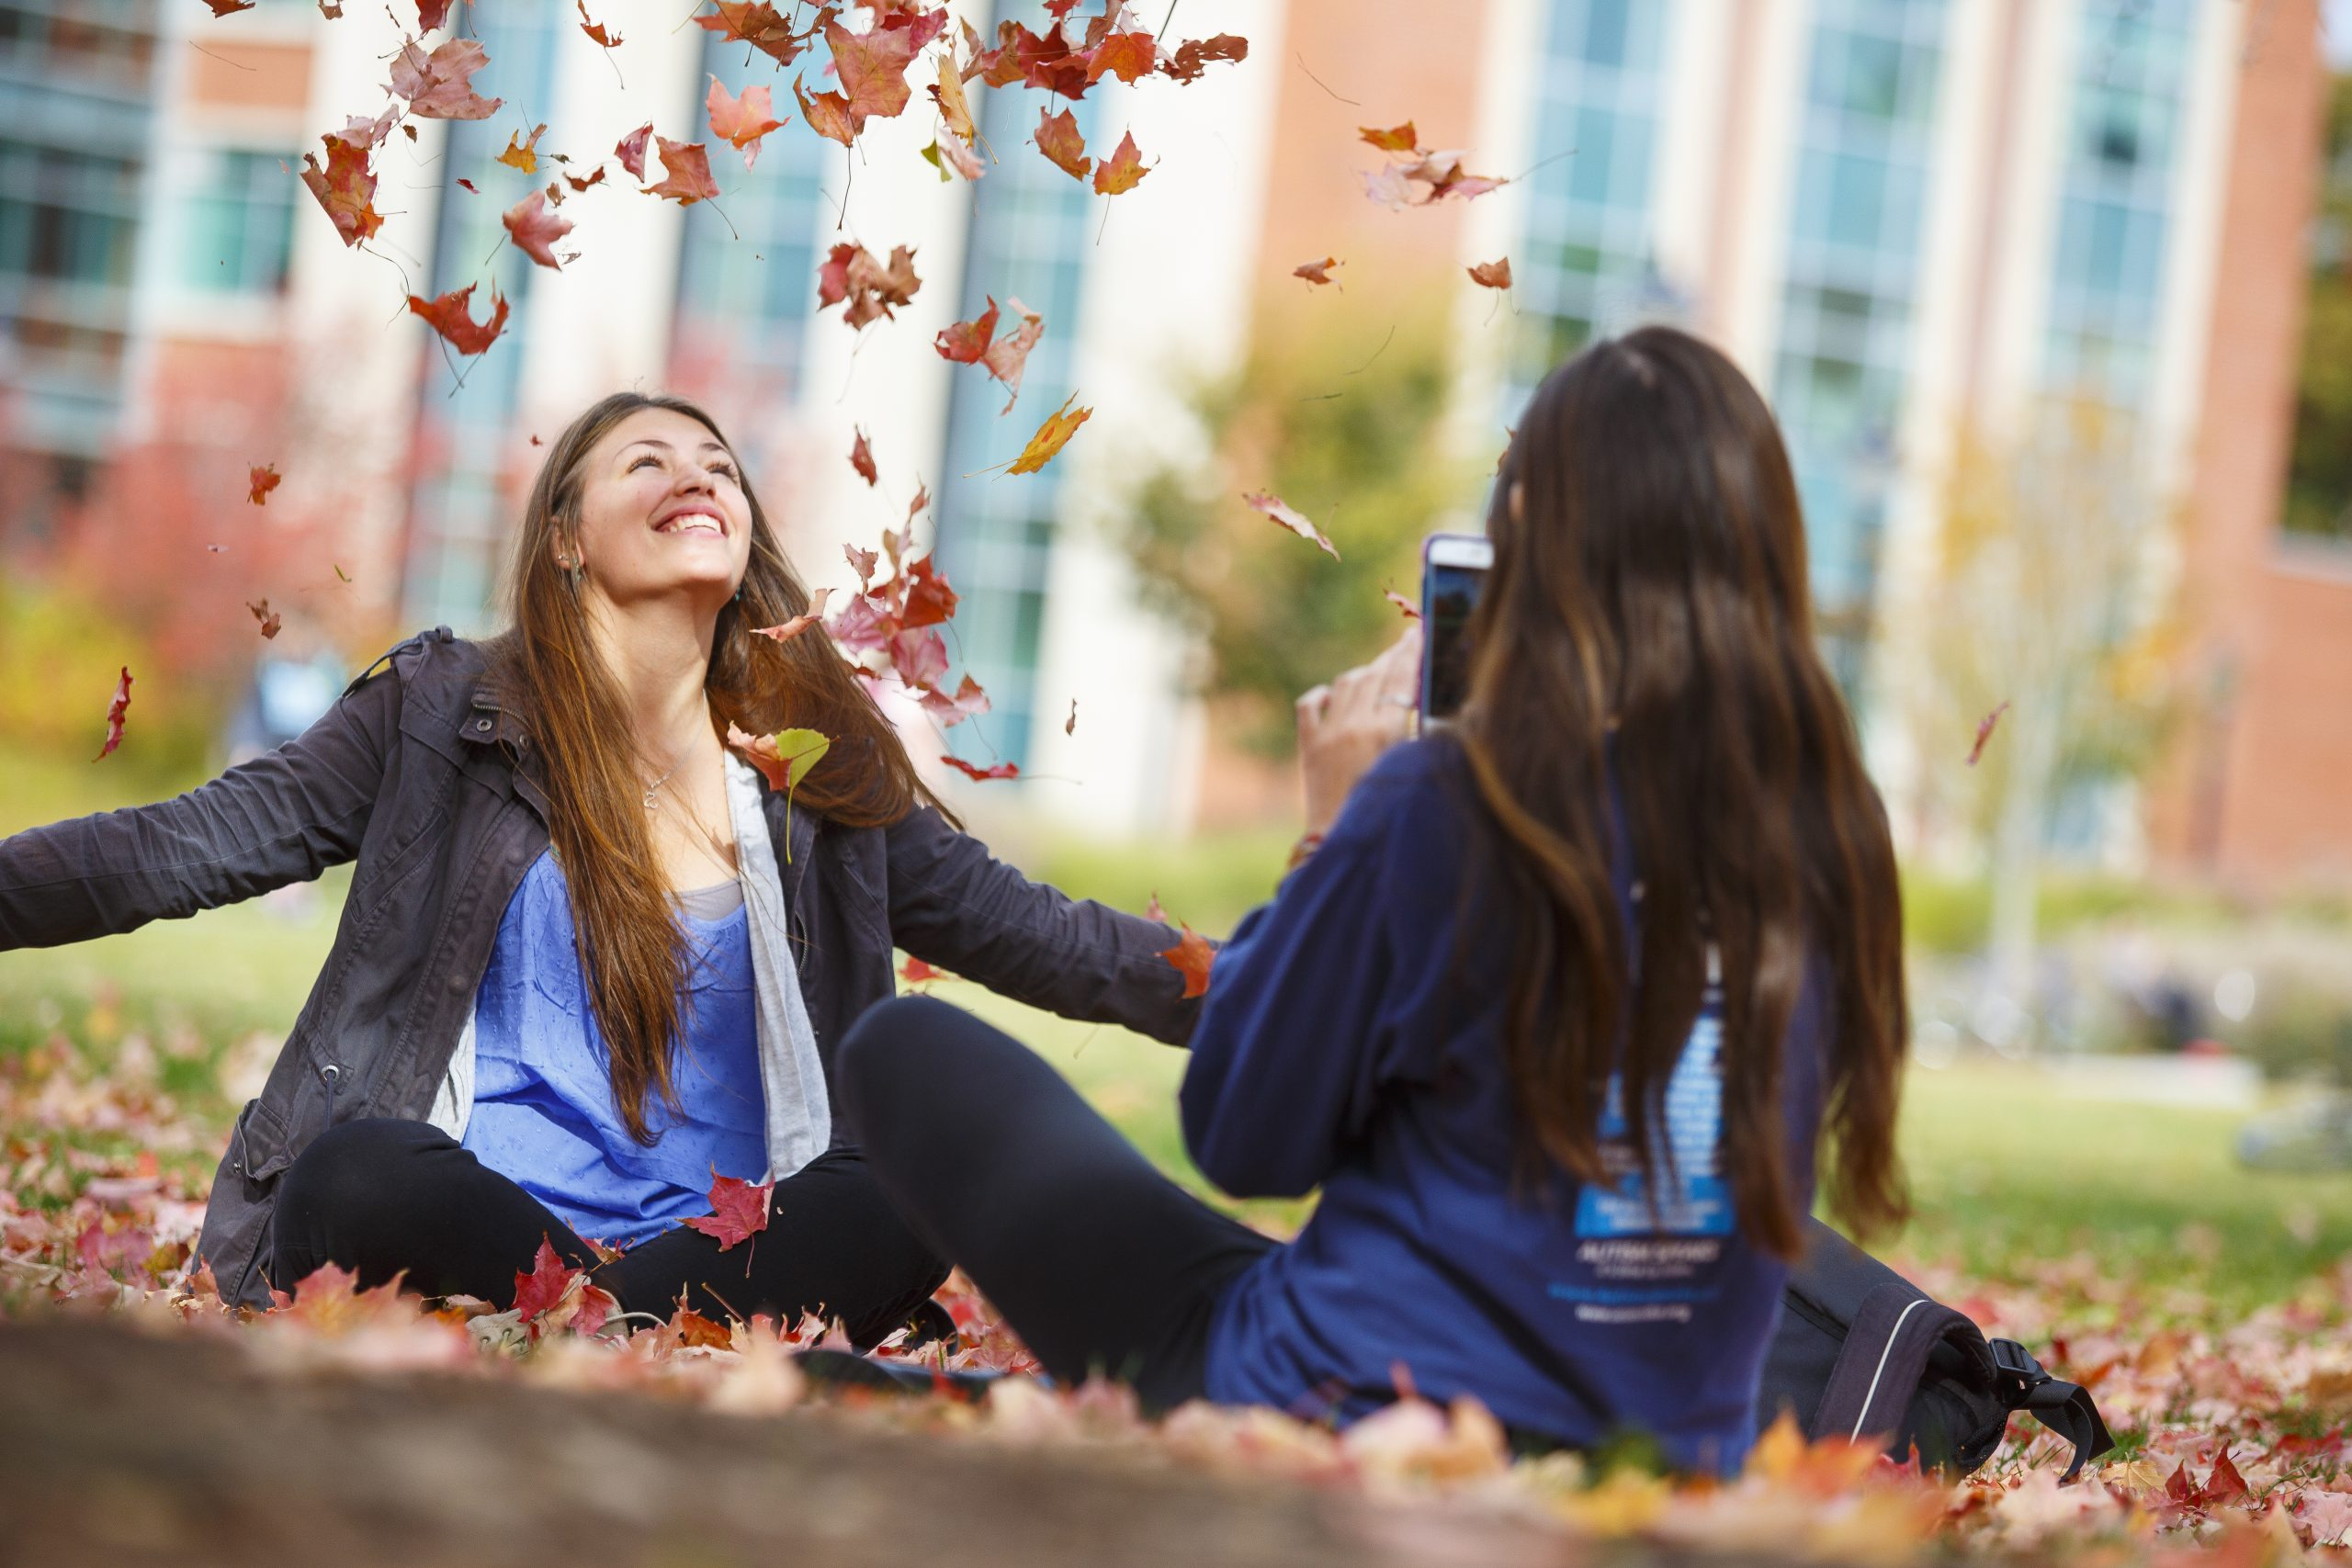 Student tossing leaves into the air